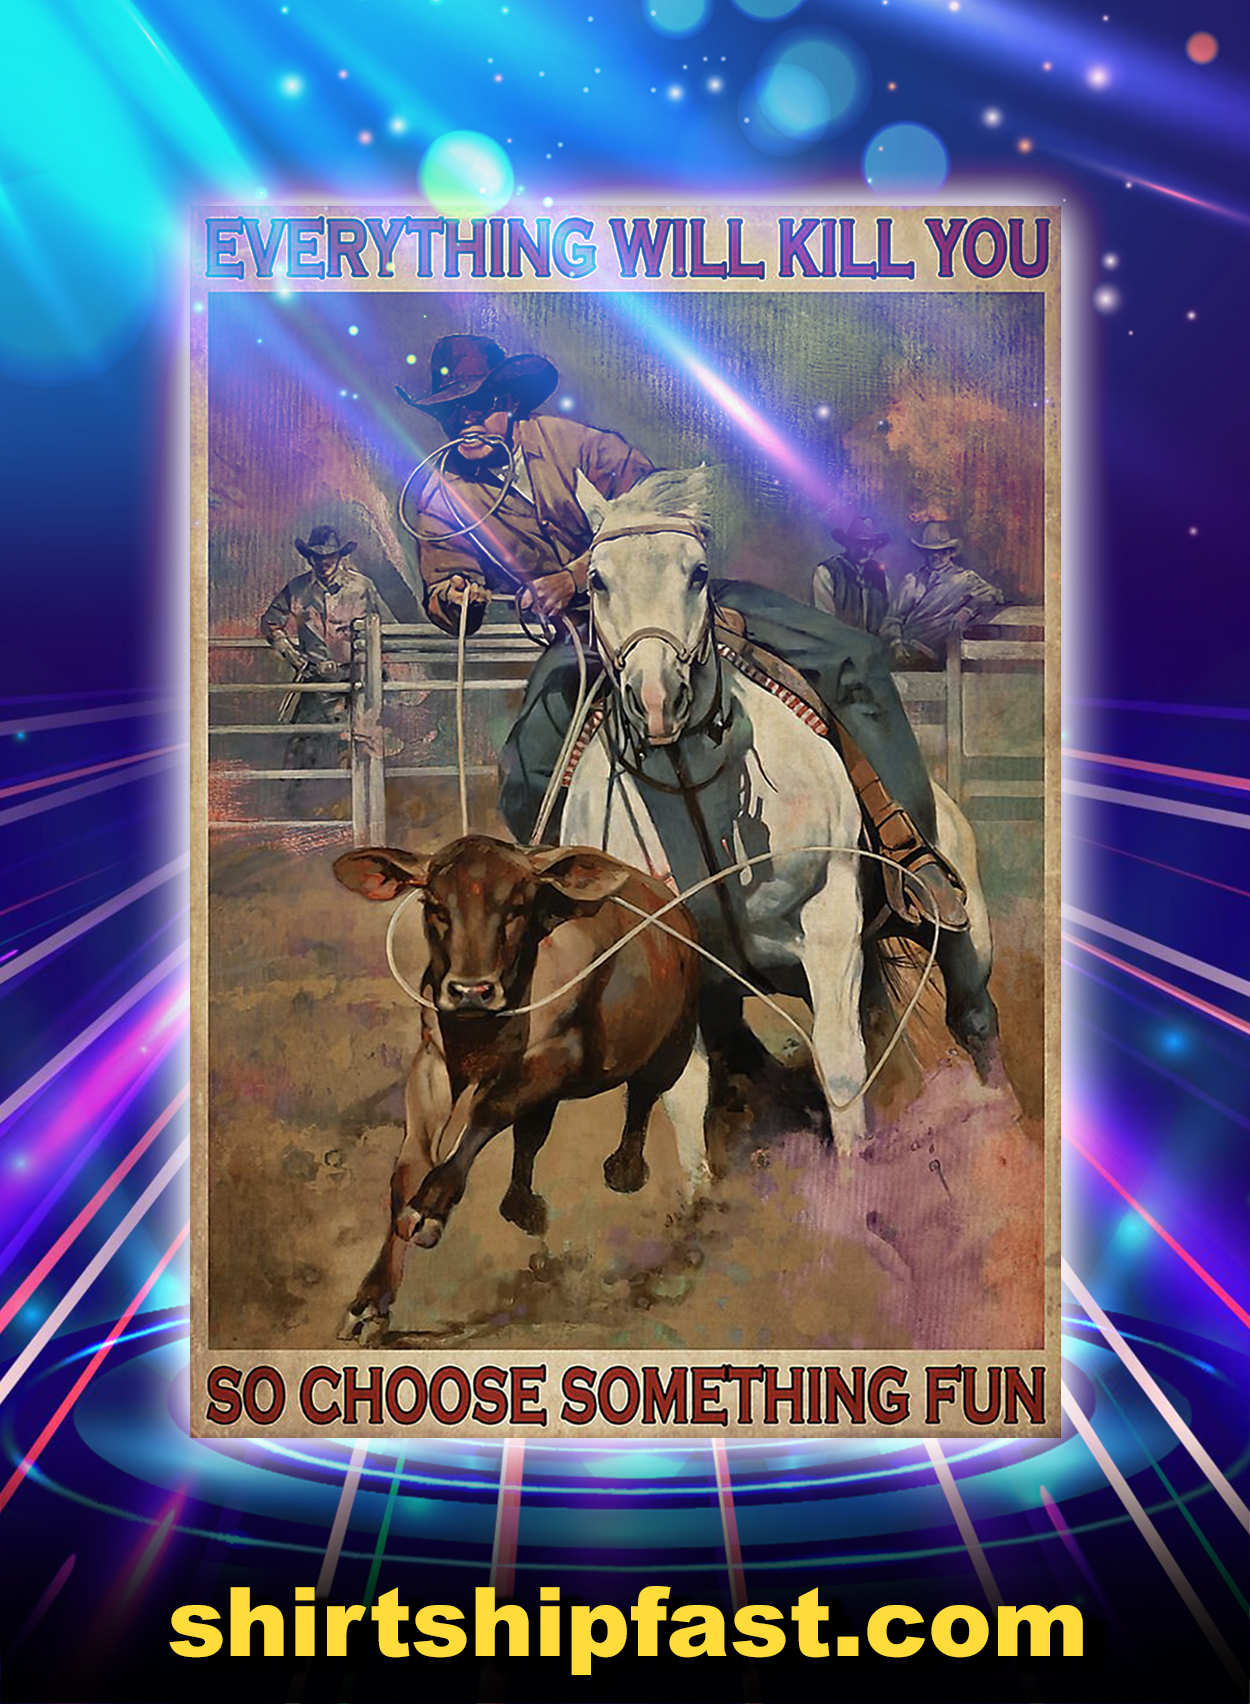 Rodeo everything will kill you poster - A2